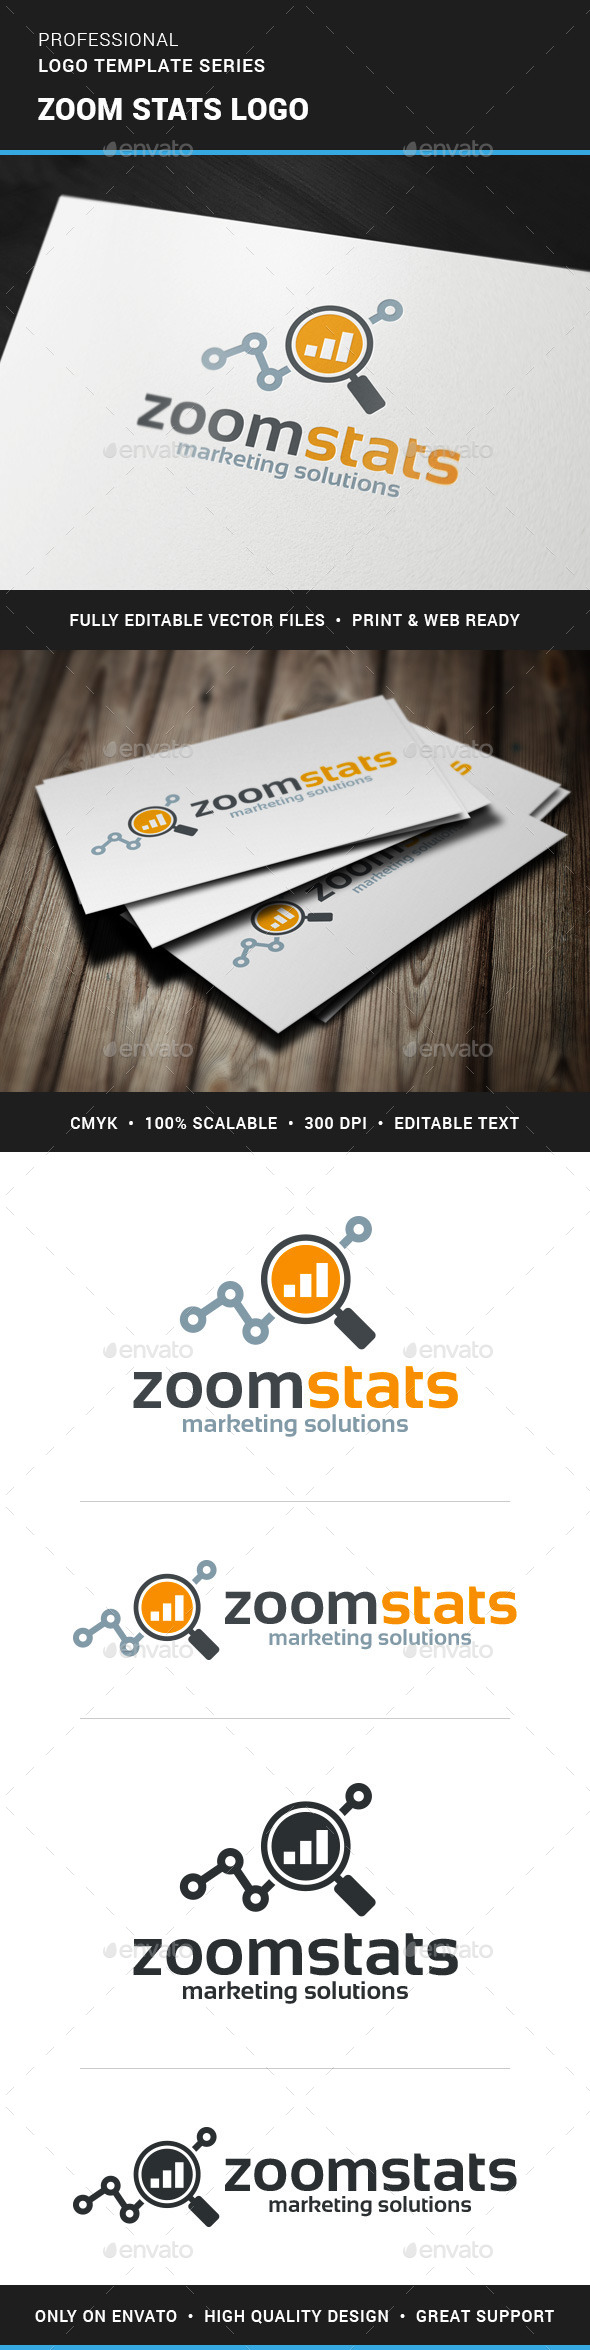 GraphicRiver Zoom Stats Logo Template 11789038